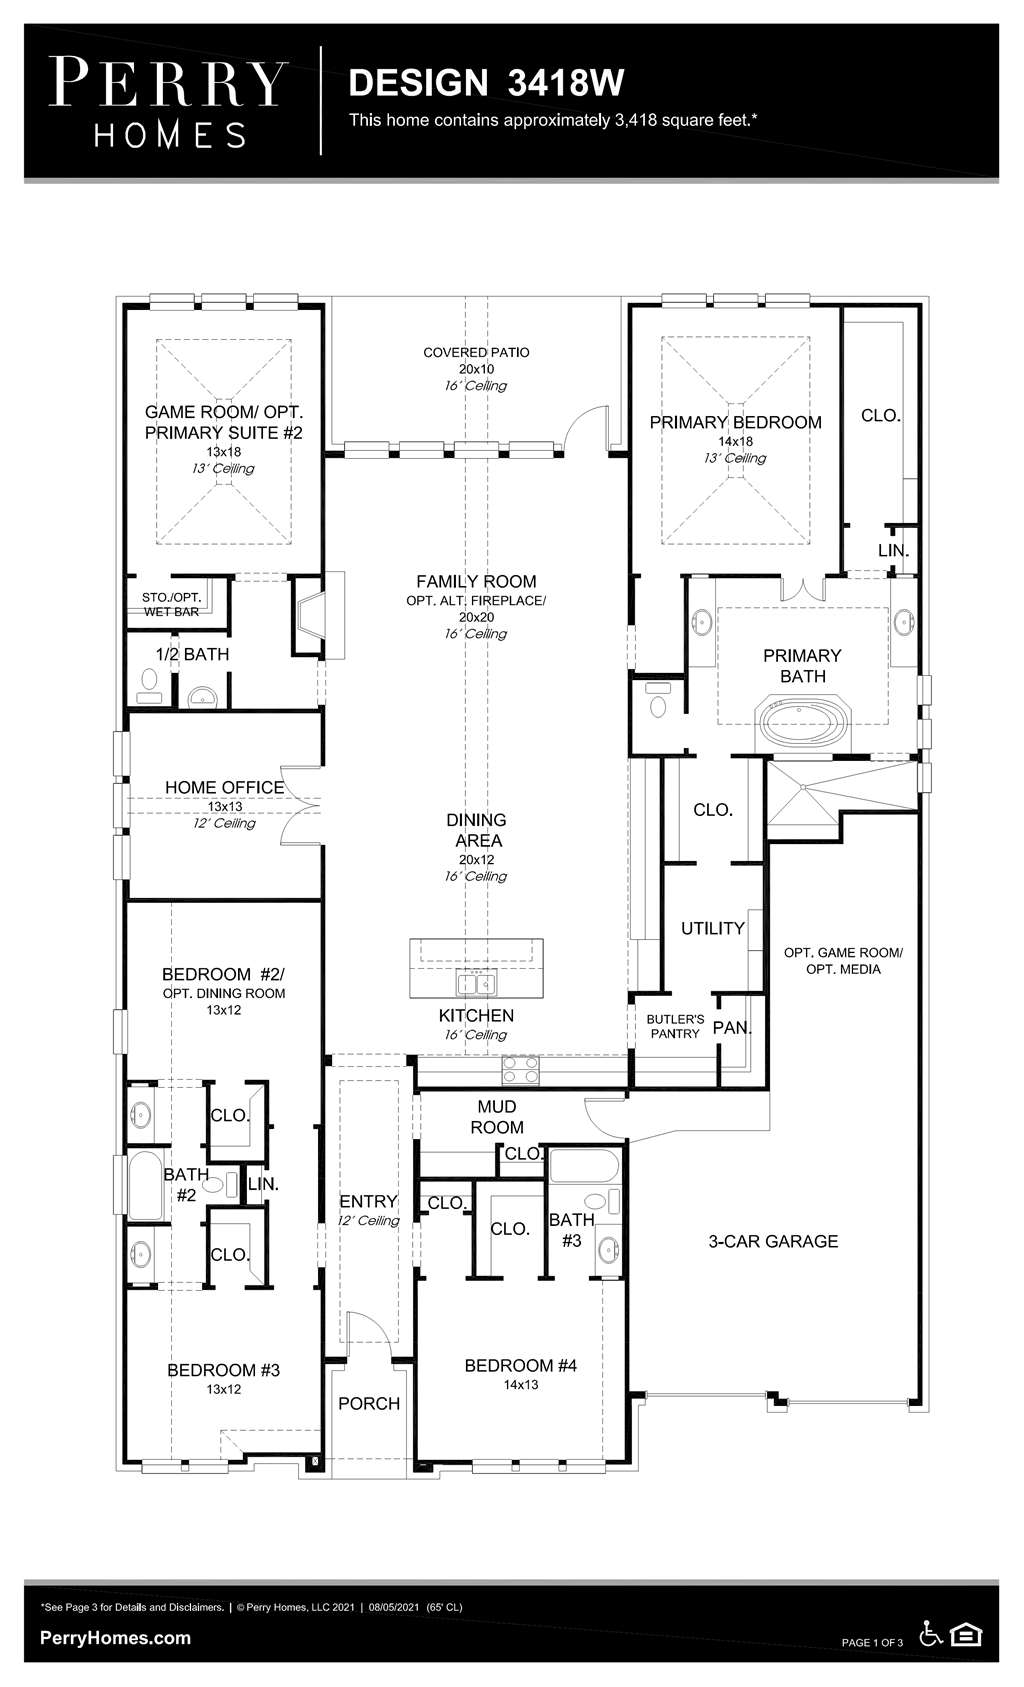 Floor Plan for 3418W